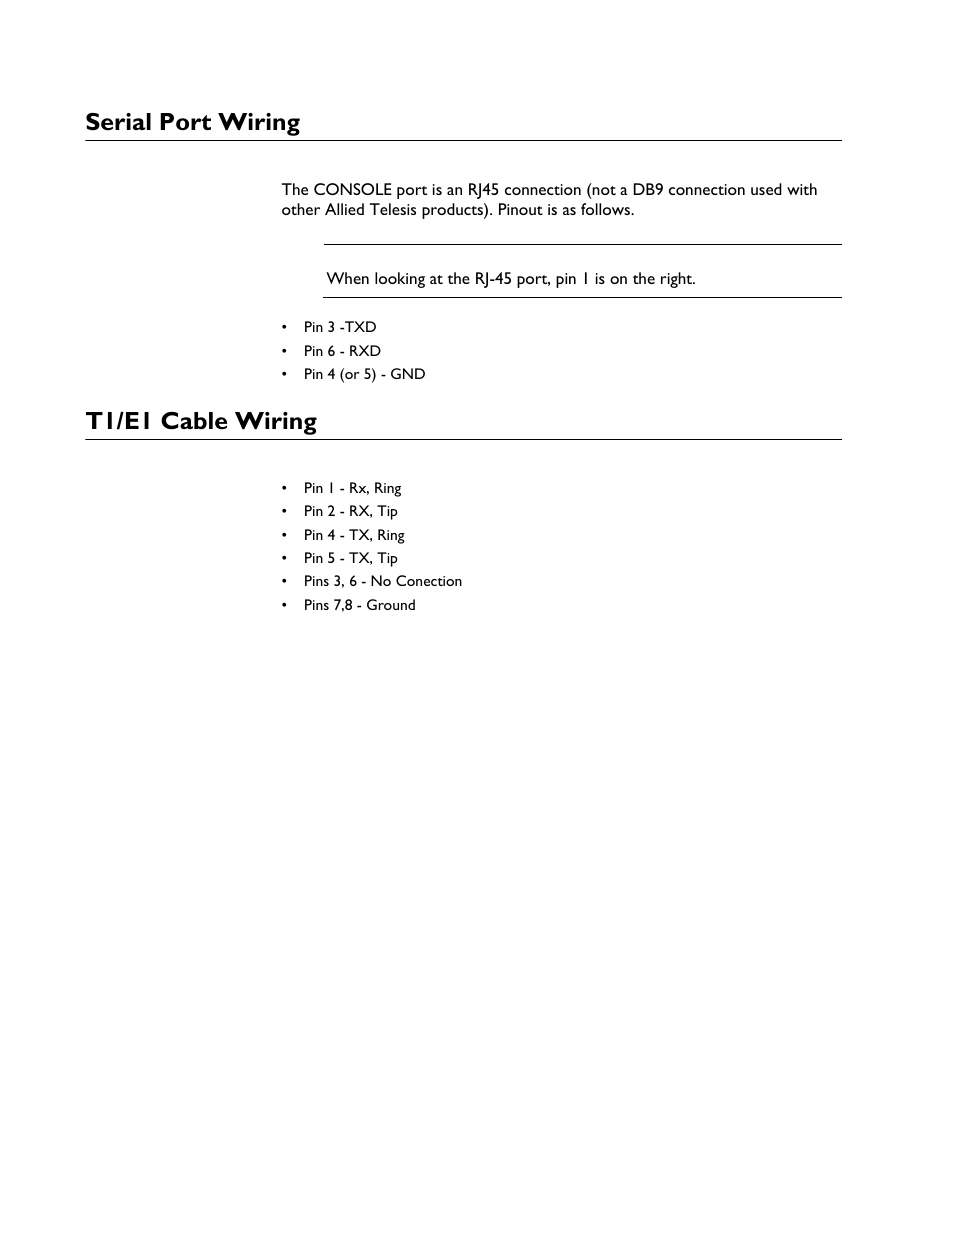 medium resolution of serial port wiring t1 e1 cable wiring allied telesis at img6x6mod electronics unit user manual page 38 46